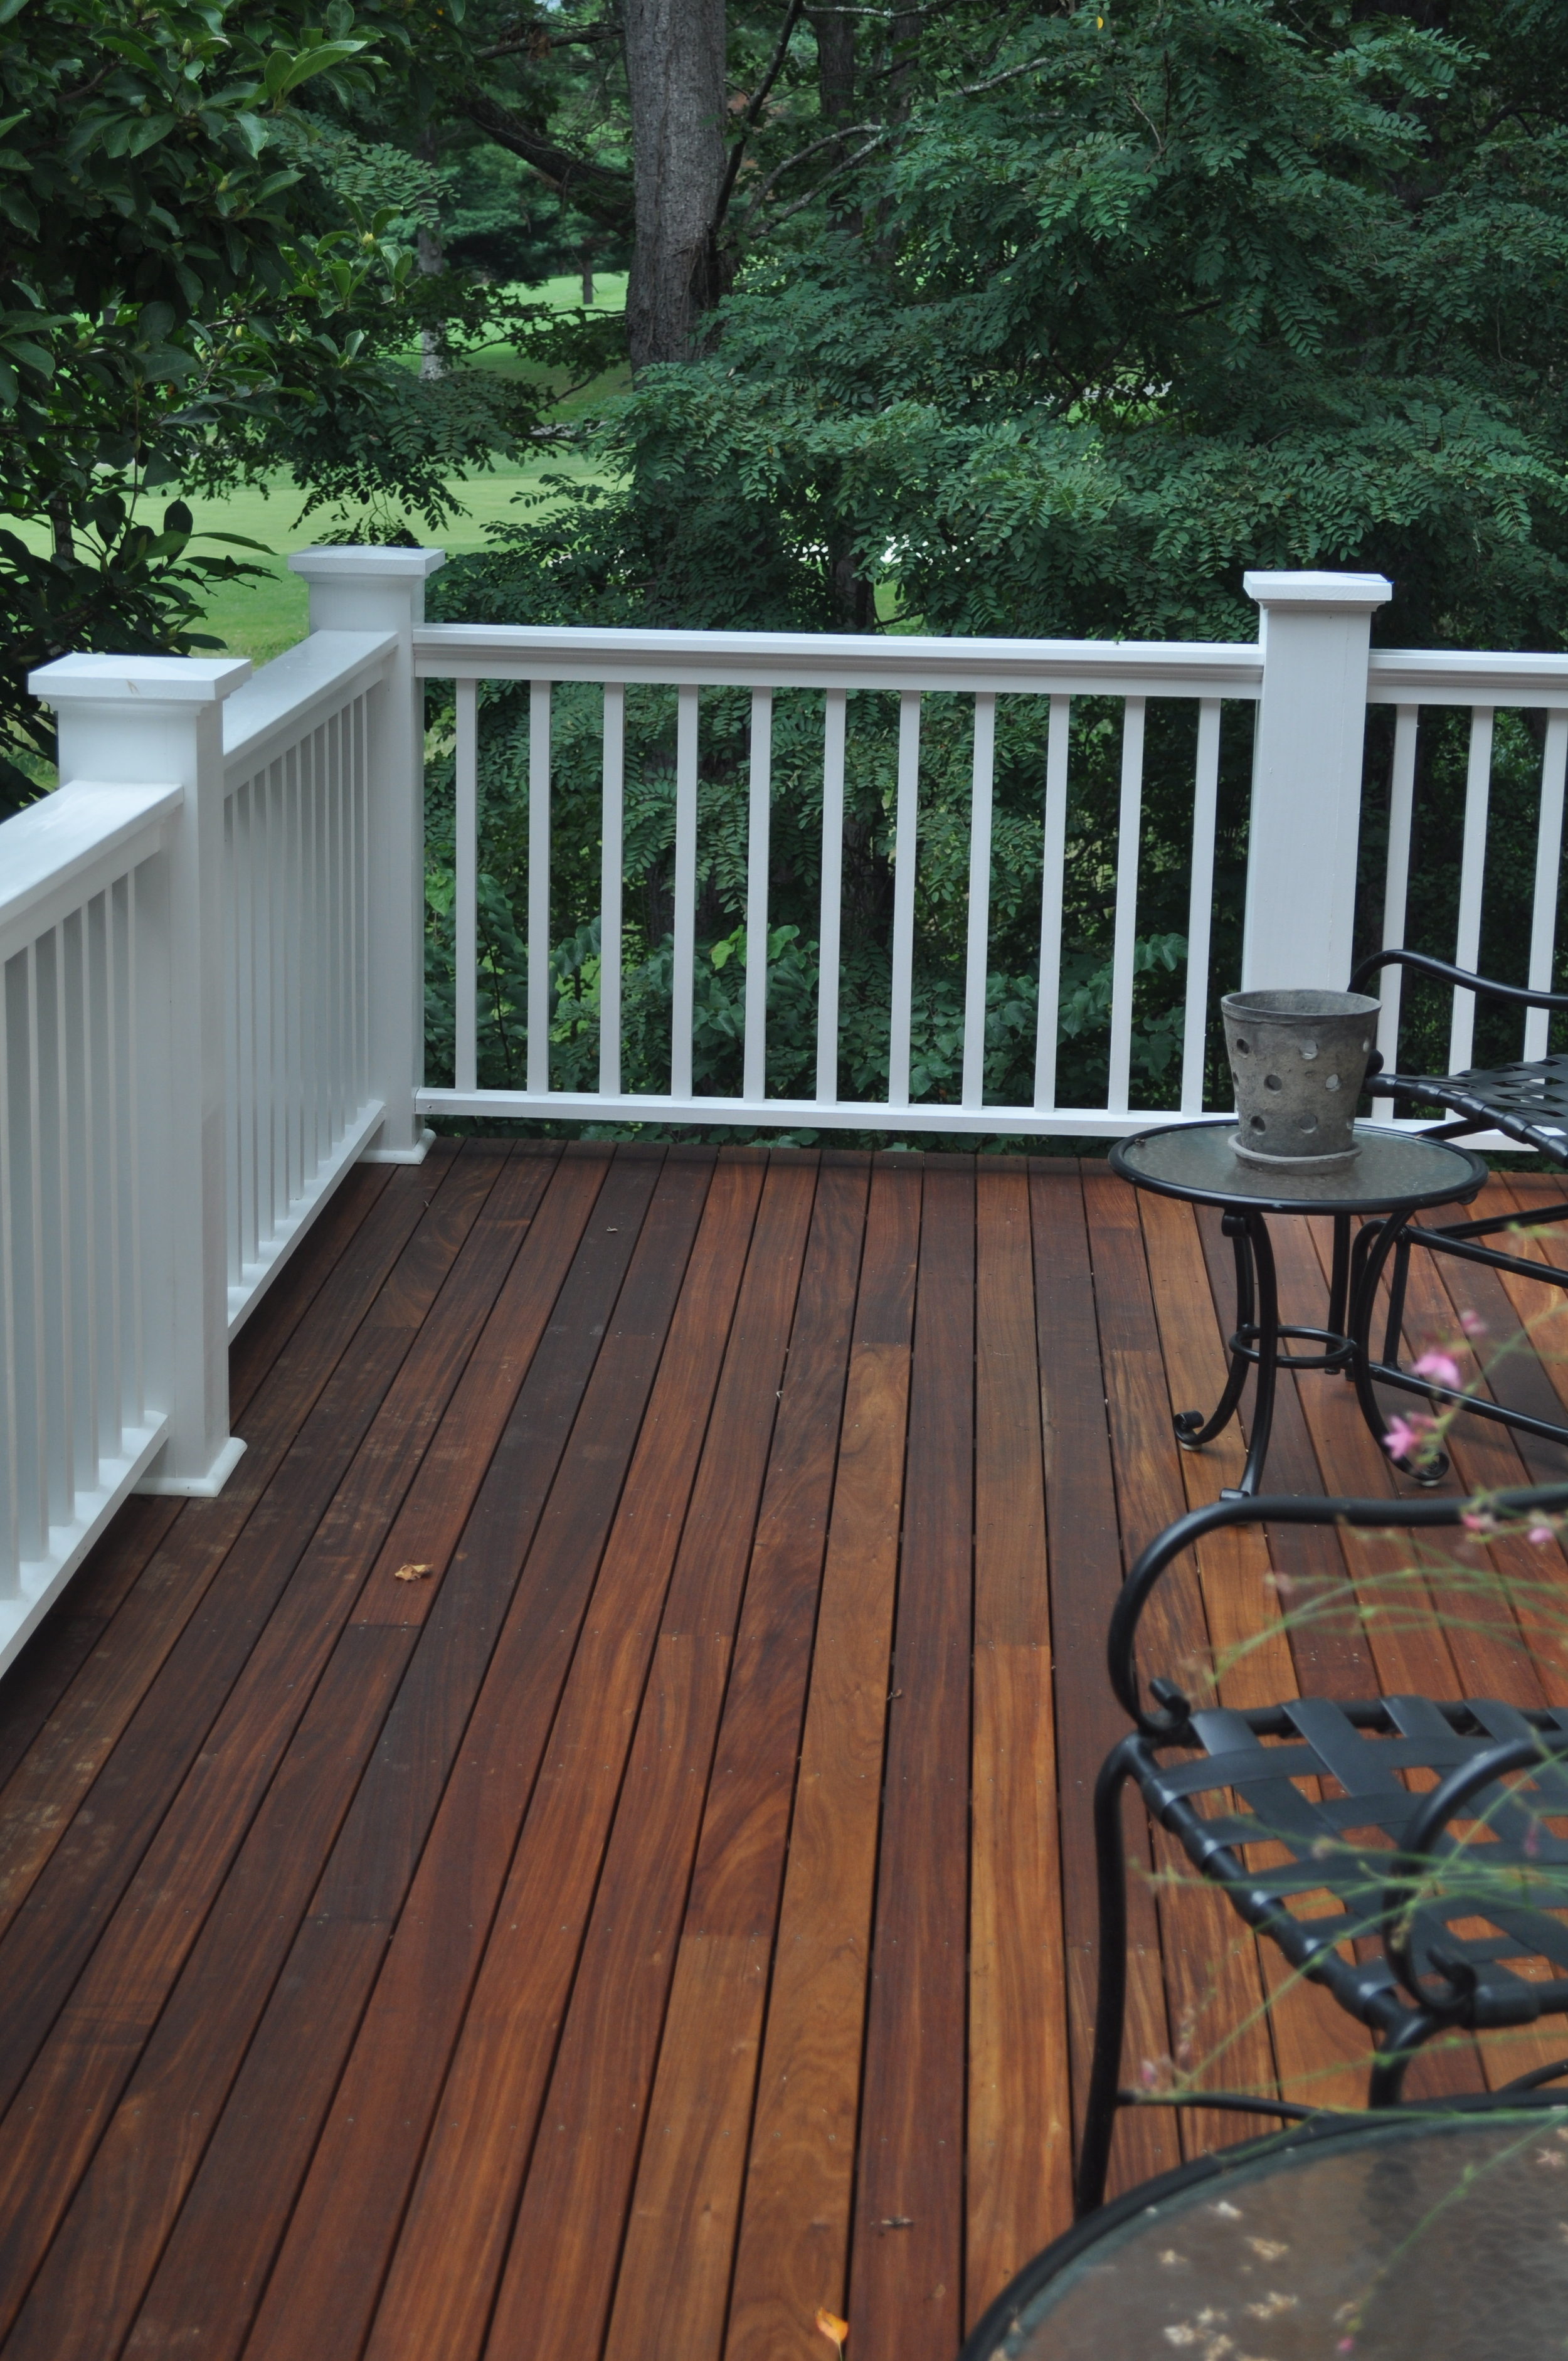 Historic 1920's Bungalow,  1x4 Ipe deck with handrail to match the style of the house.